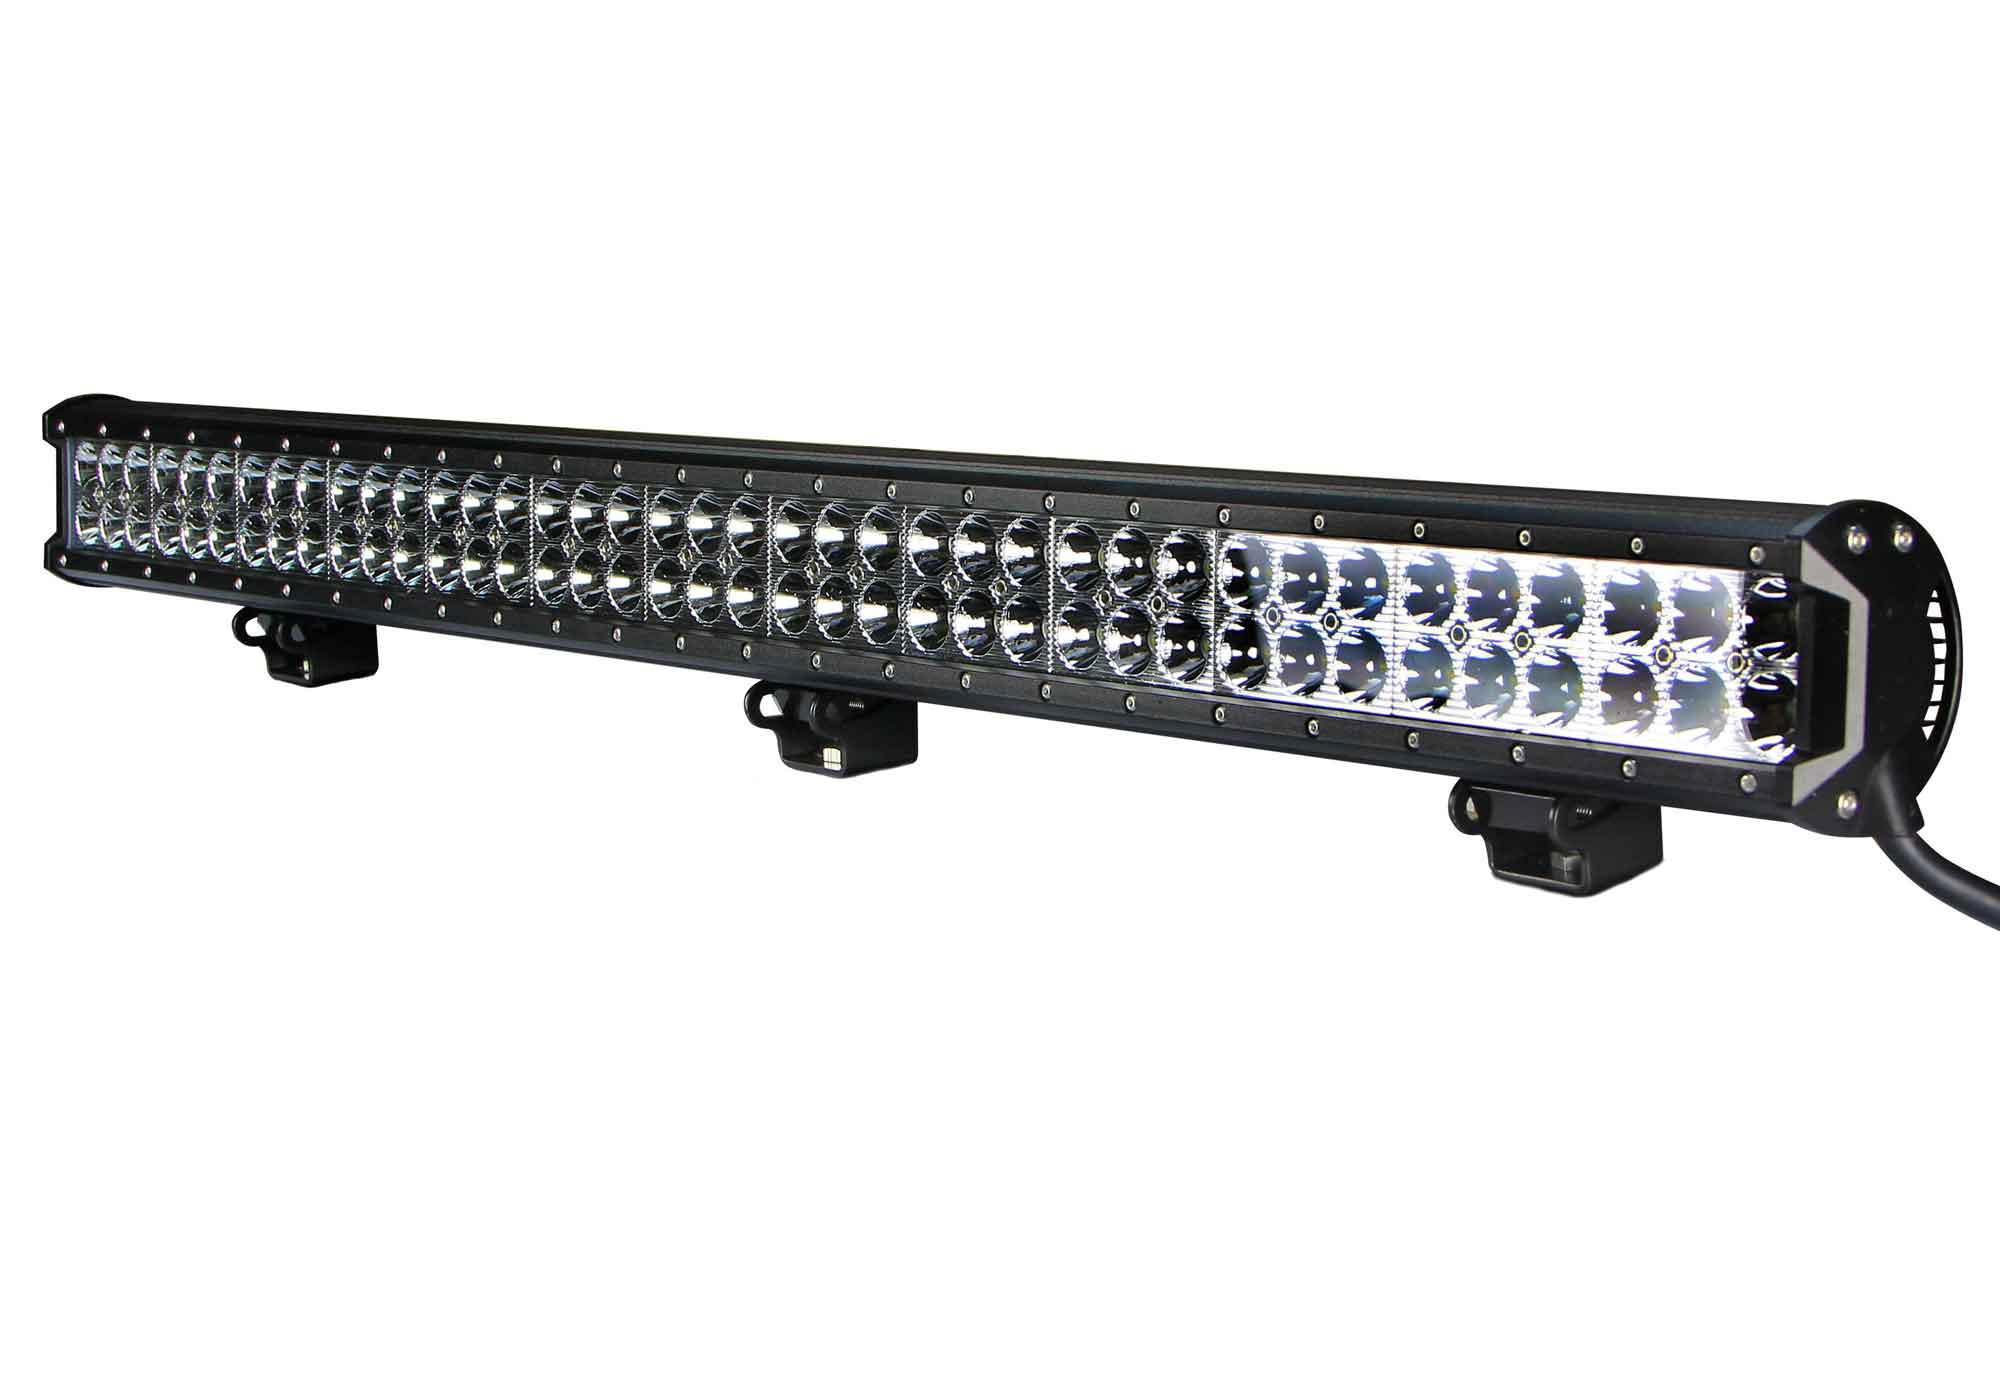 Vortex series led light bar 36 inch 234 watt combo tuff led lights defcon36in234w1 aloadofball Image collections